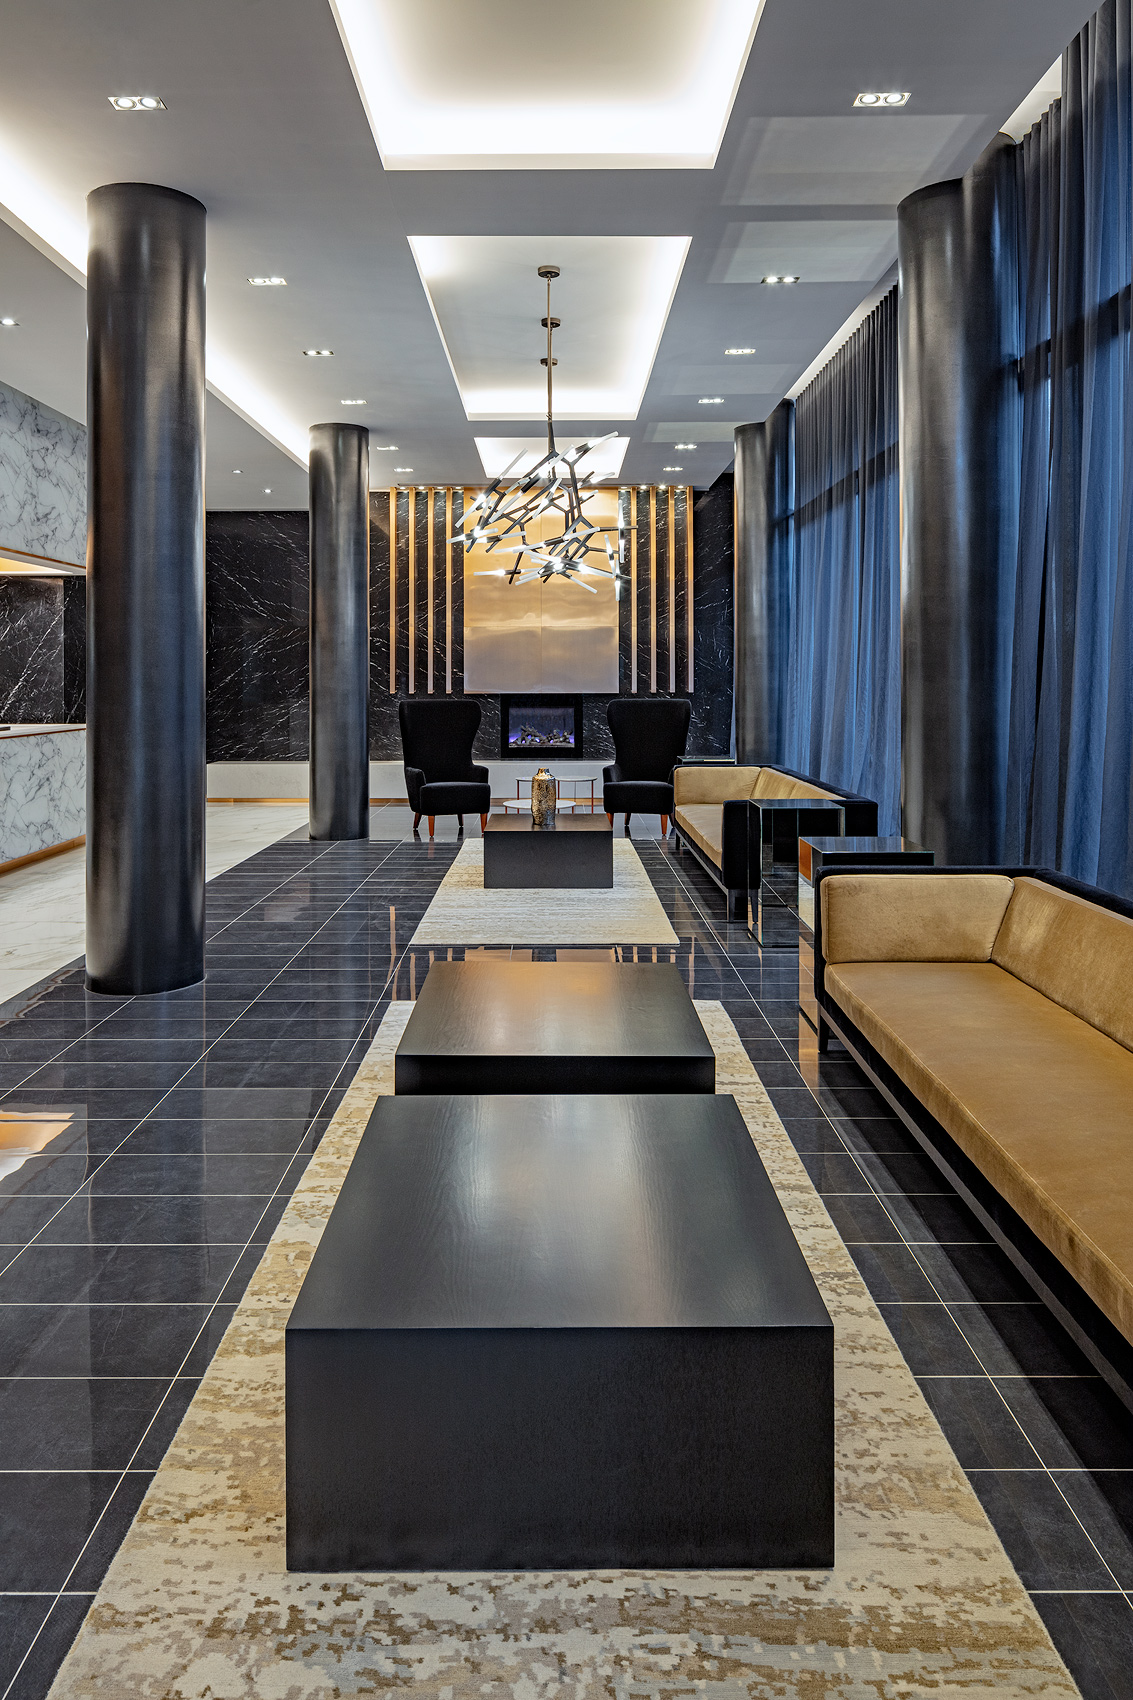 Lobby with stone walls and floors, Peter A. Sellar Architectural Photographer